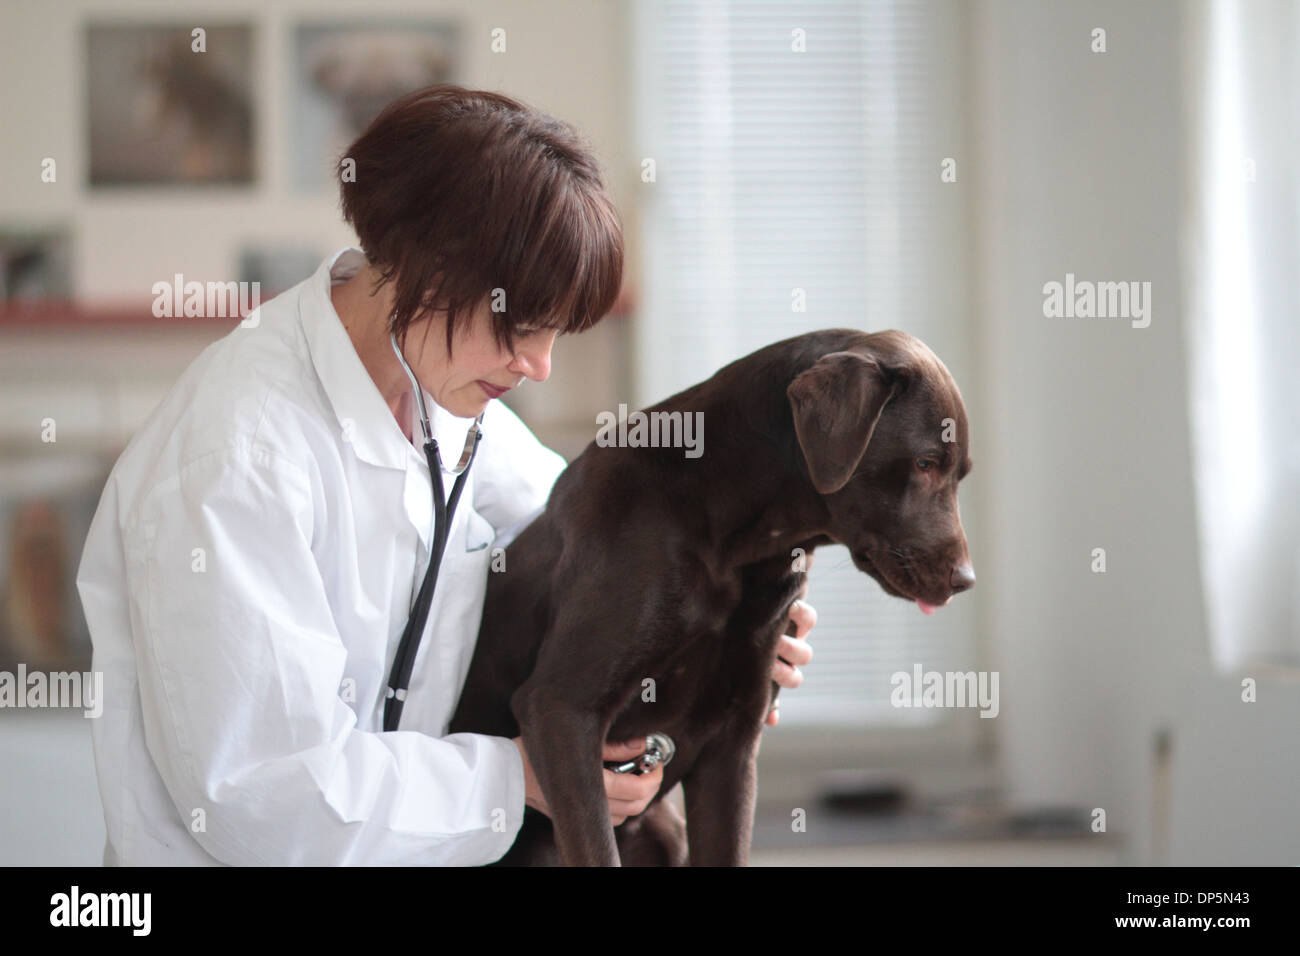 a veterinary woman middle age Caucasian examines a dog middle high in a surgery for pets - Stock Image